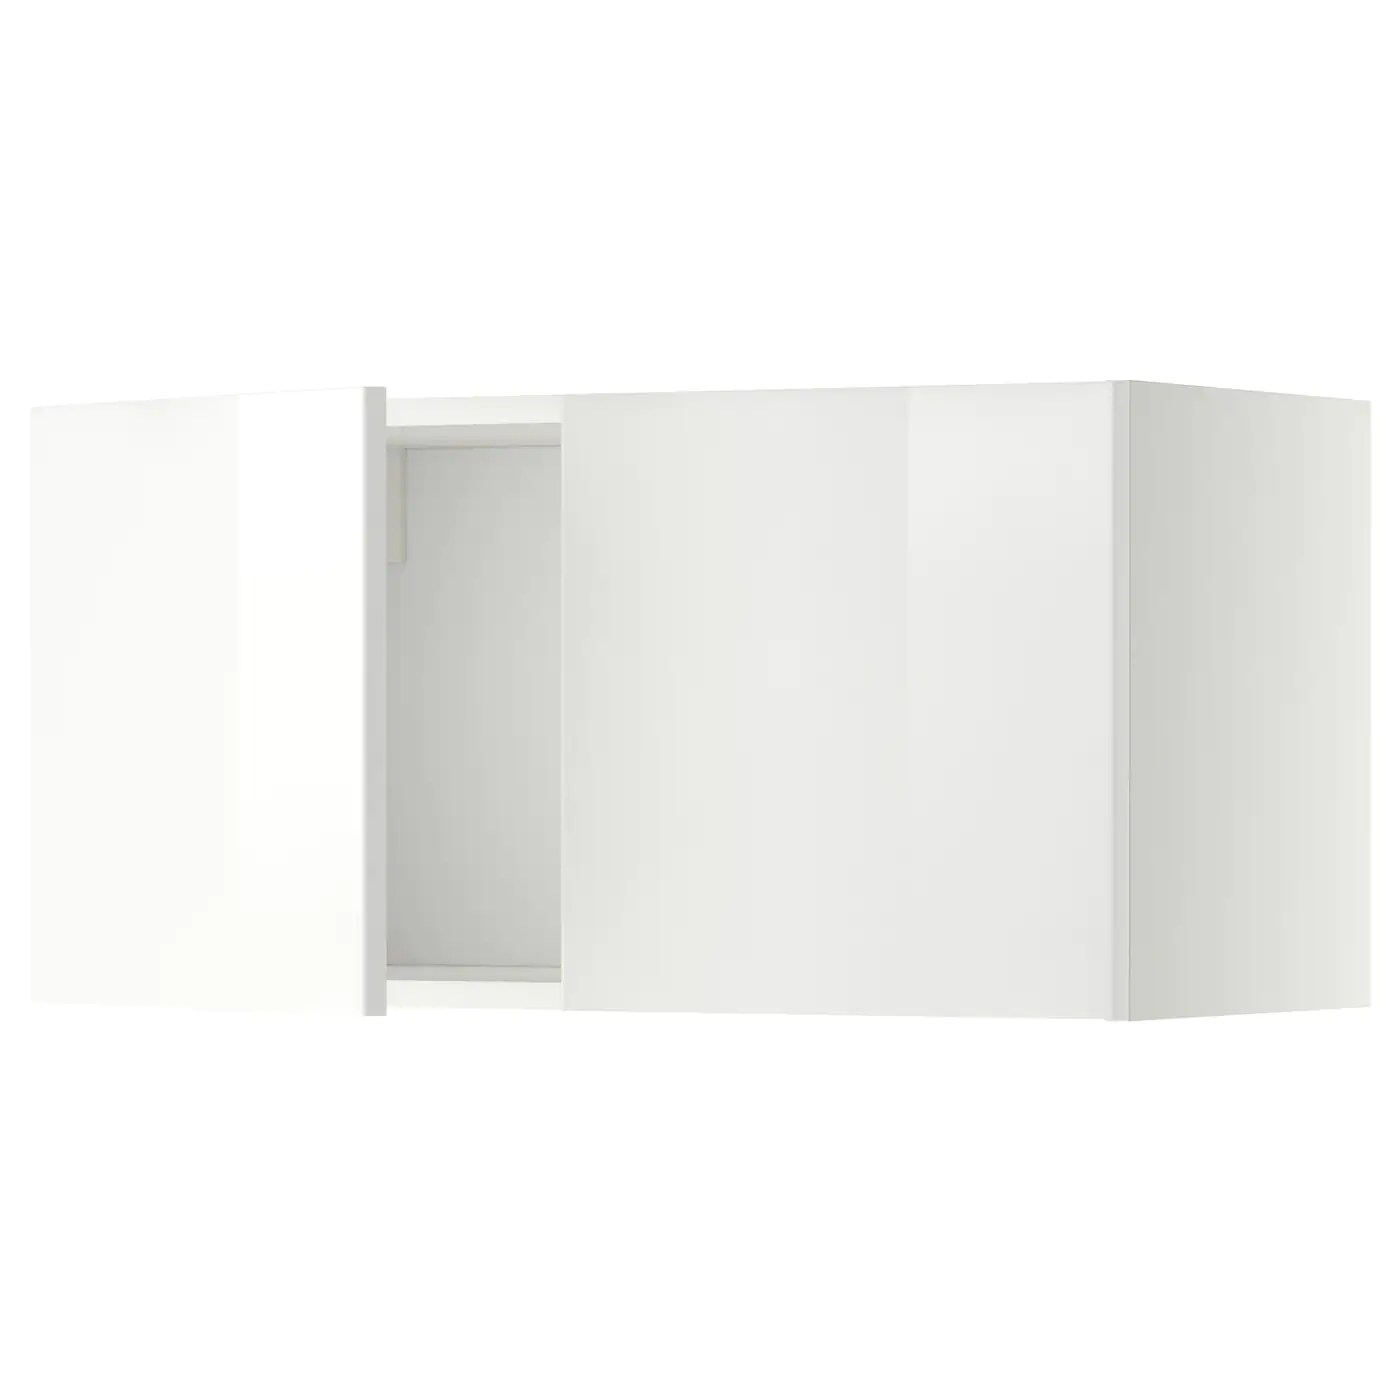 Kast 80 Cm Breed 40 Diep Metod Wall Cabinet With 2 Doors White Ringhult White 80 X